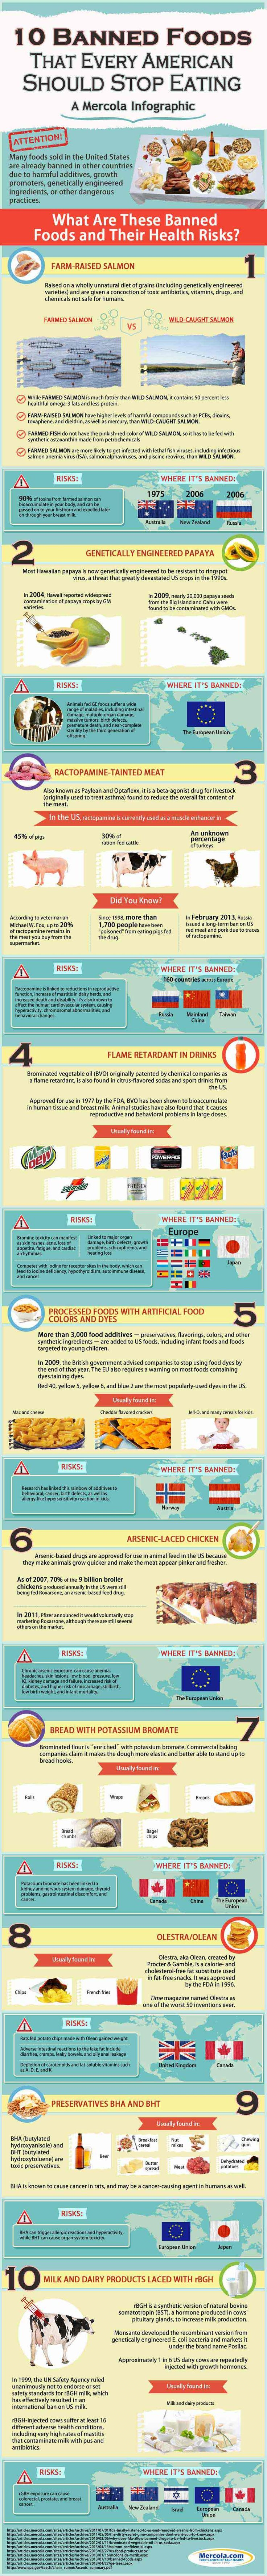 """Are you eating food that's already banned in other countries but is still allowed to poison and kill Americans? Learn these pernicious ingredients and common foods through this infographic. Use the embed code to share it on your website. <img src=""""http://media.mercola.com/assets/images/infographic/banned-foods-infographic.jpg"""" alt=""""10 Banned Foods to Avoid"""" border=""""0"""" style=""""max-width:100%; min-width:300px; margin: 0 auto 20px auto; display:block;""""><p …"""